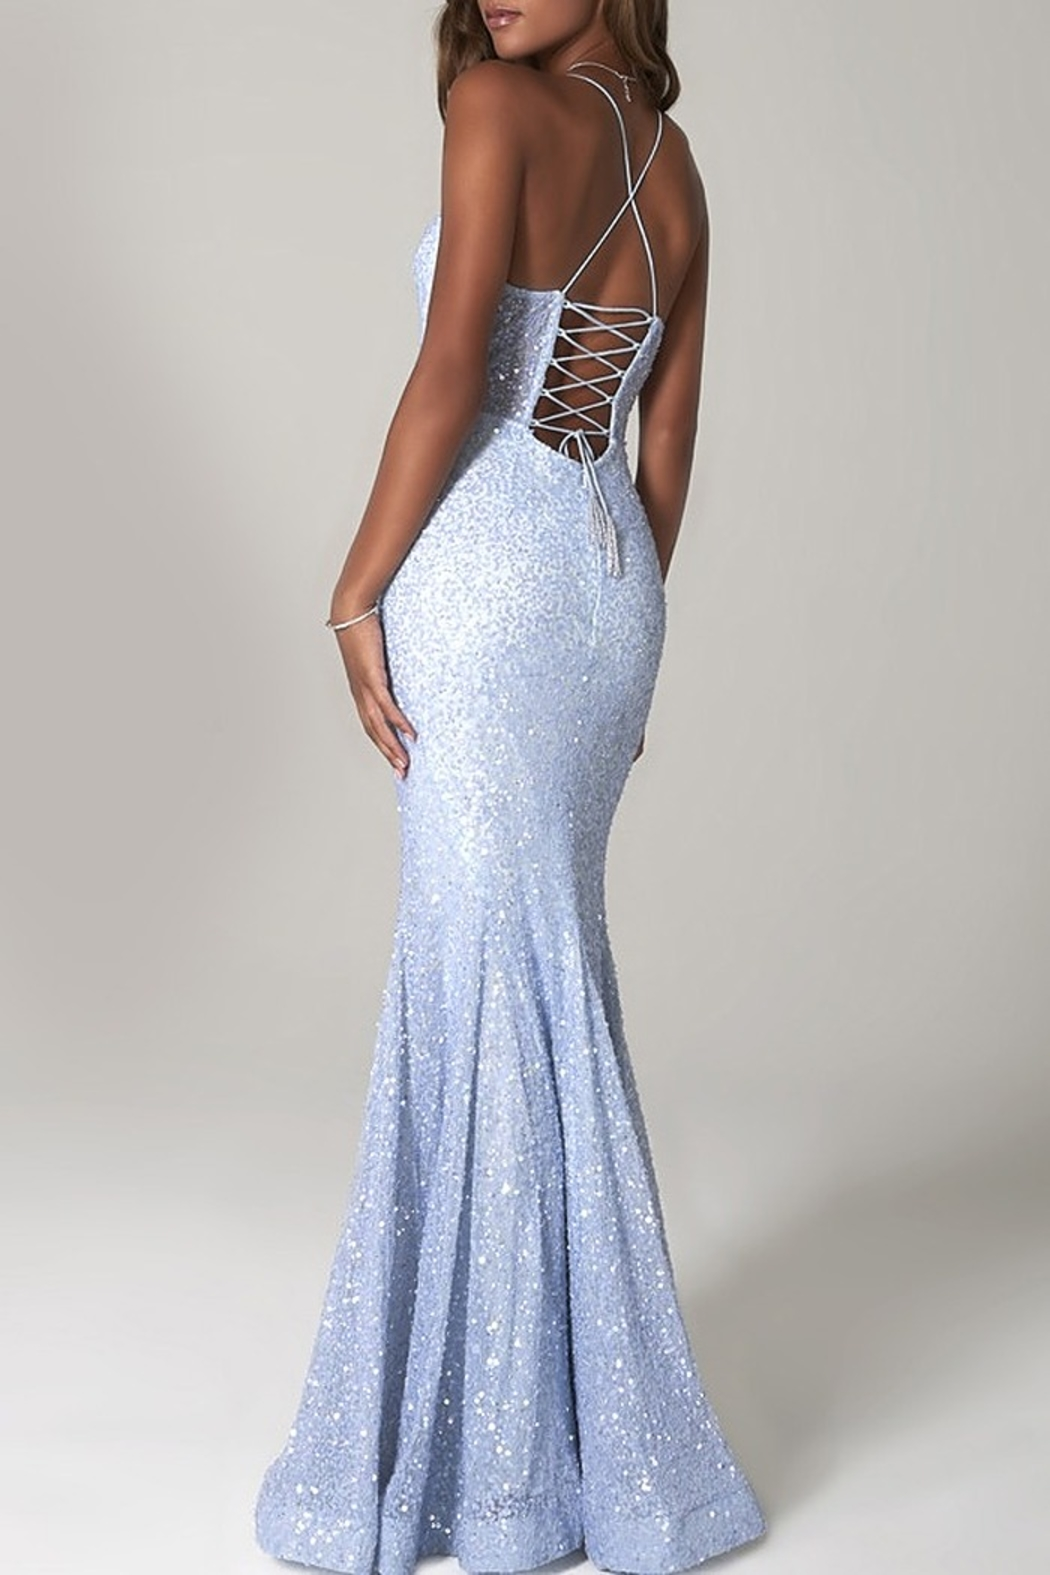 Scala Sequin Mermaid Gown with Sheer Bodice - Front Full Image